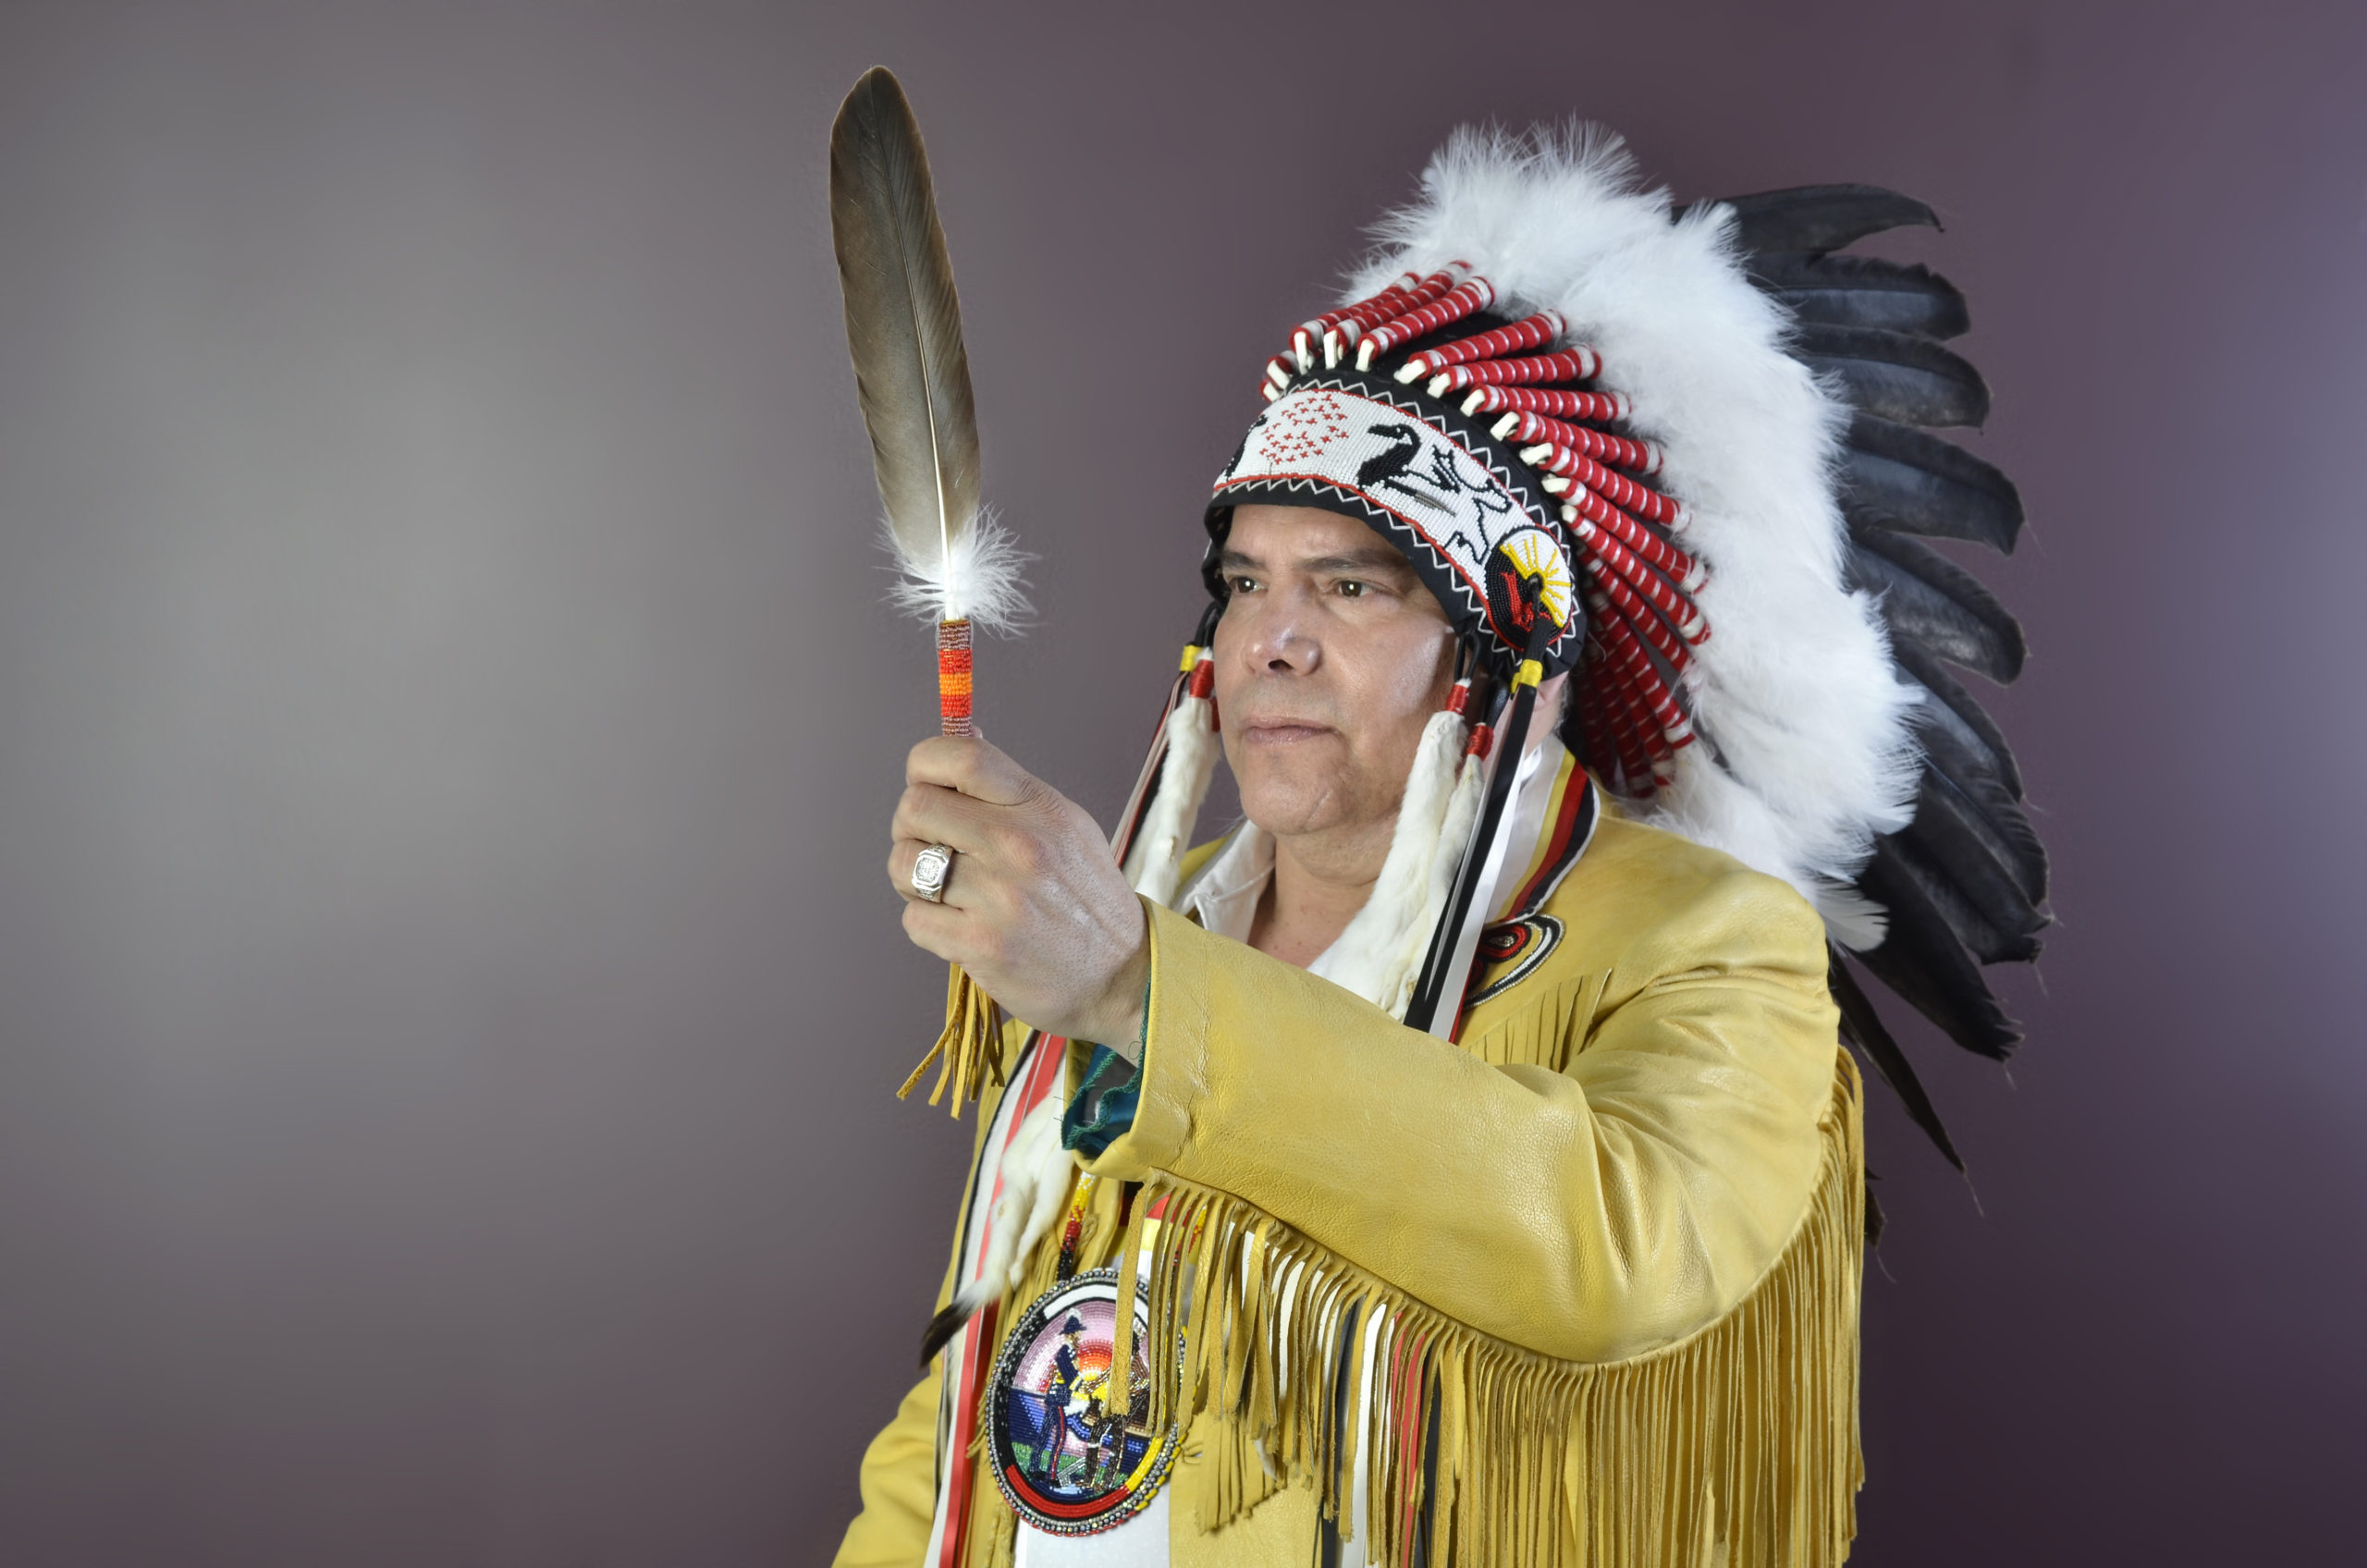 Grand Chief Settee holding an eagle feather